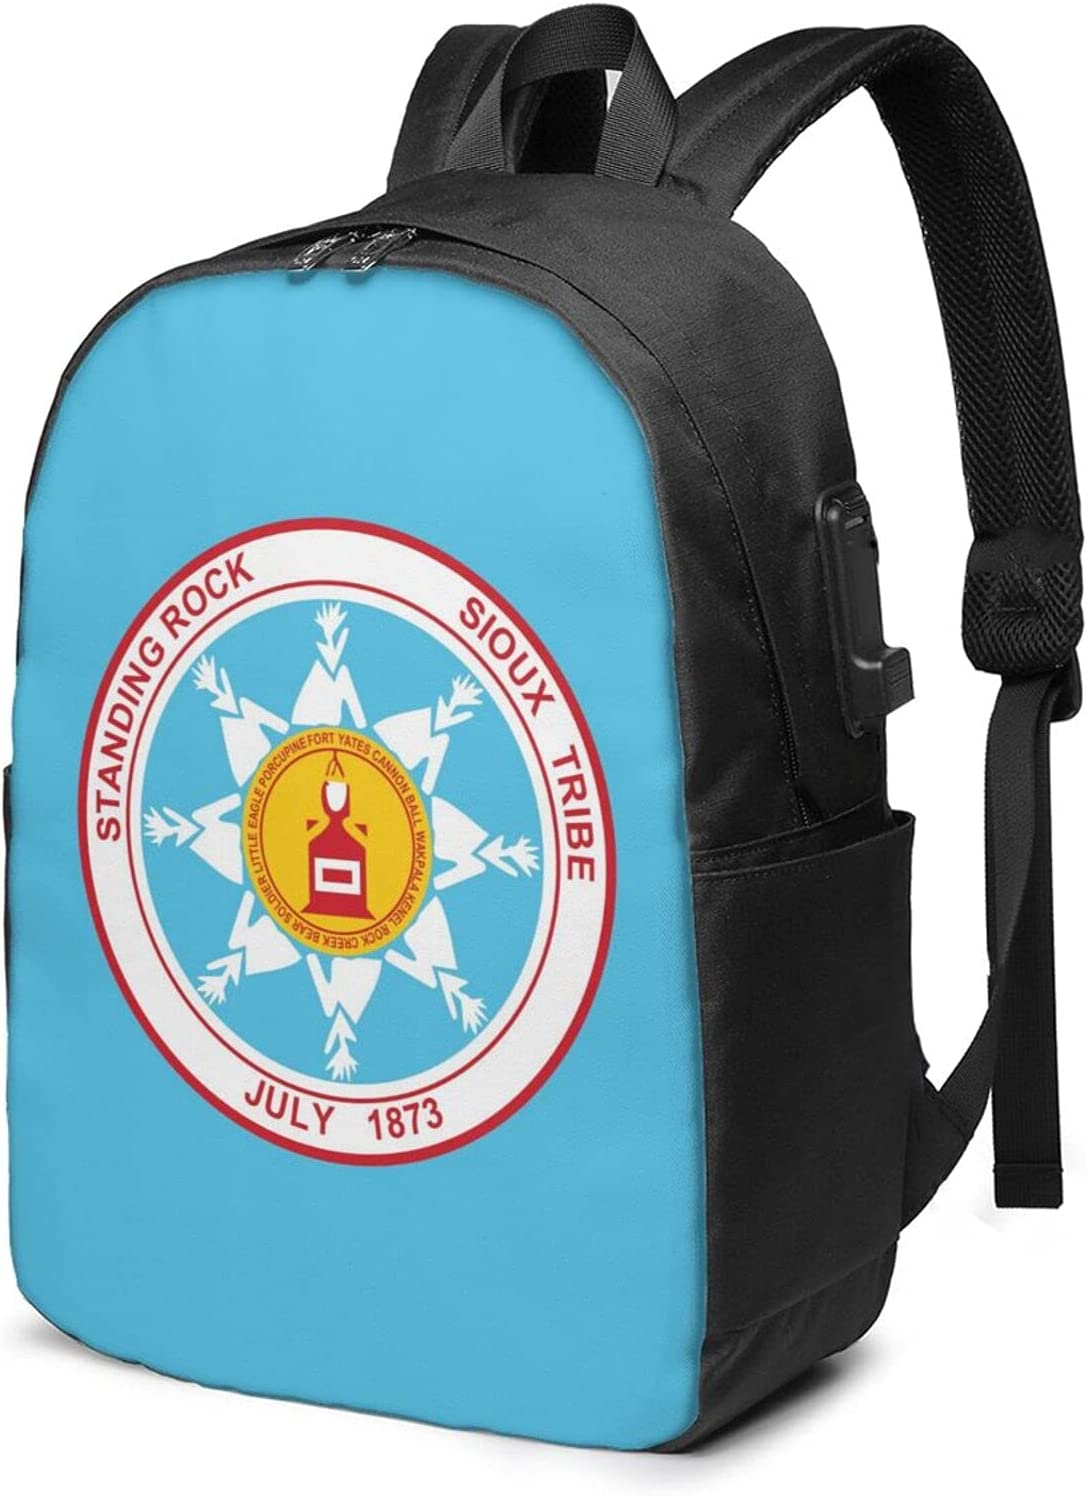 Standing Rock Sioux Tribe Challenge the lowest price of Japan ☆ Laptop Port Backpack Usb Charging free shipping With